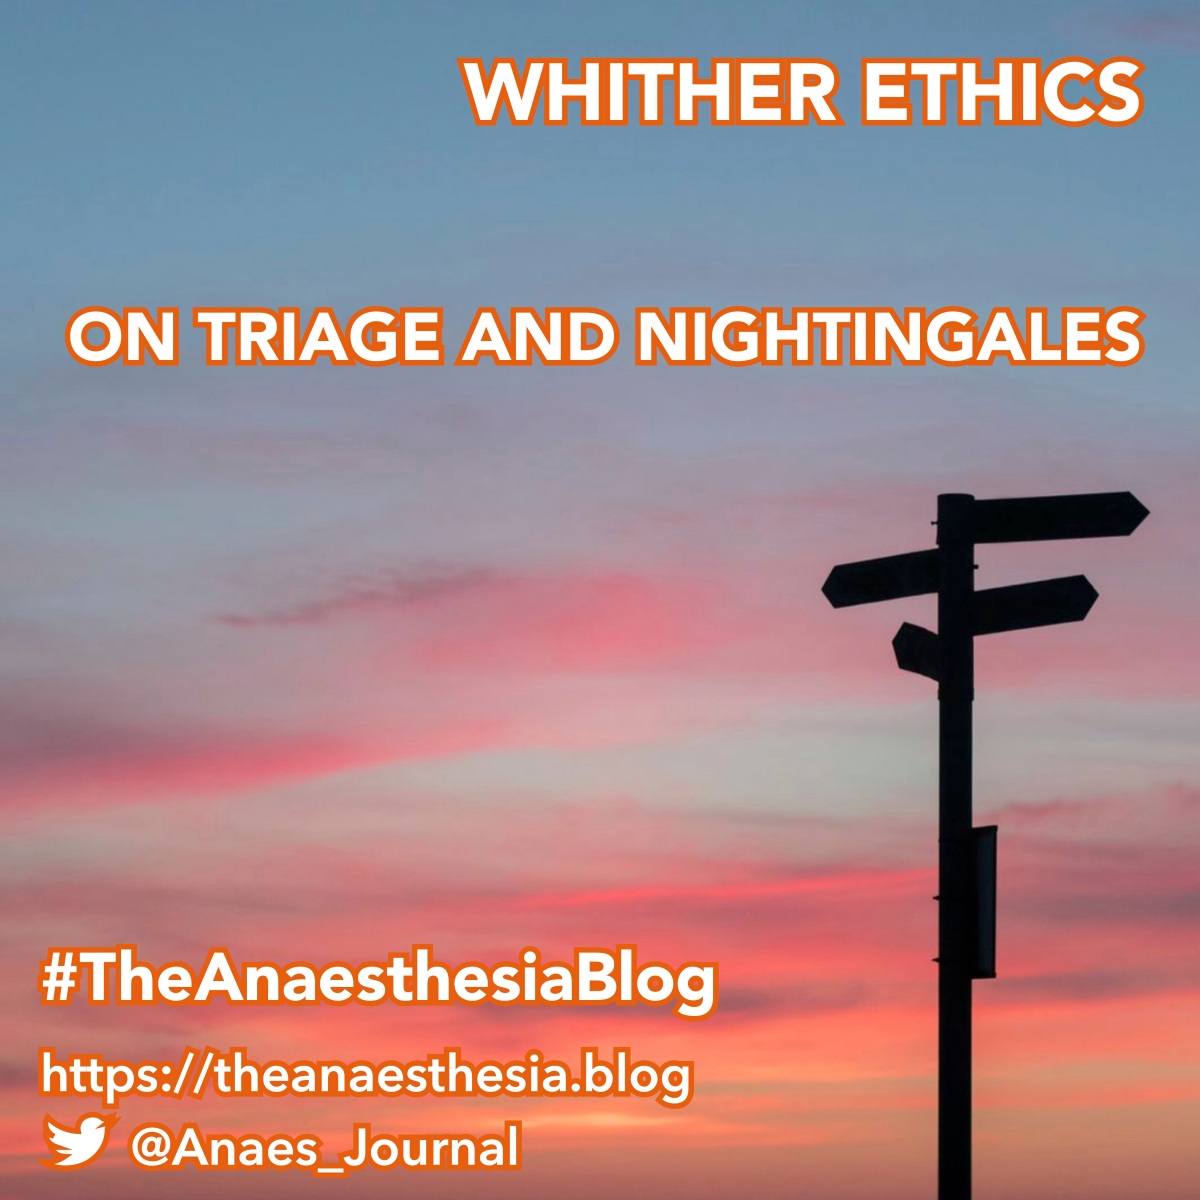 Whither ethics – on triage andNightingales